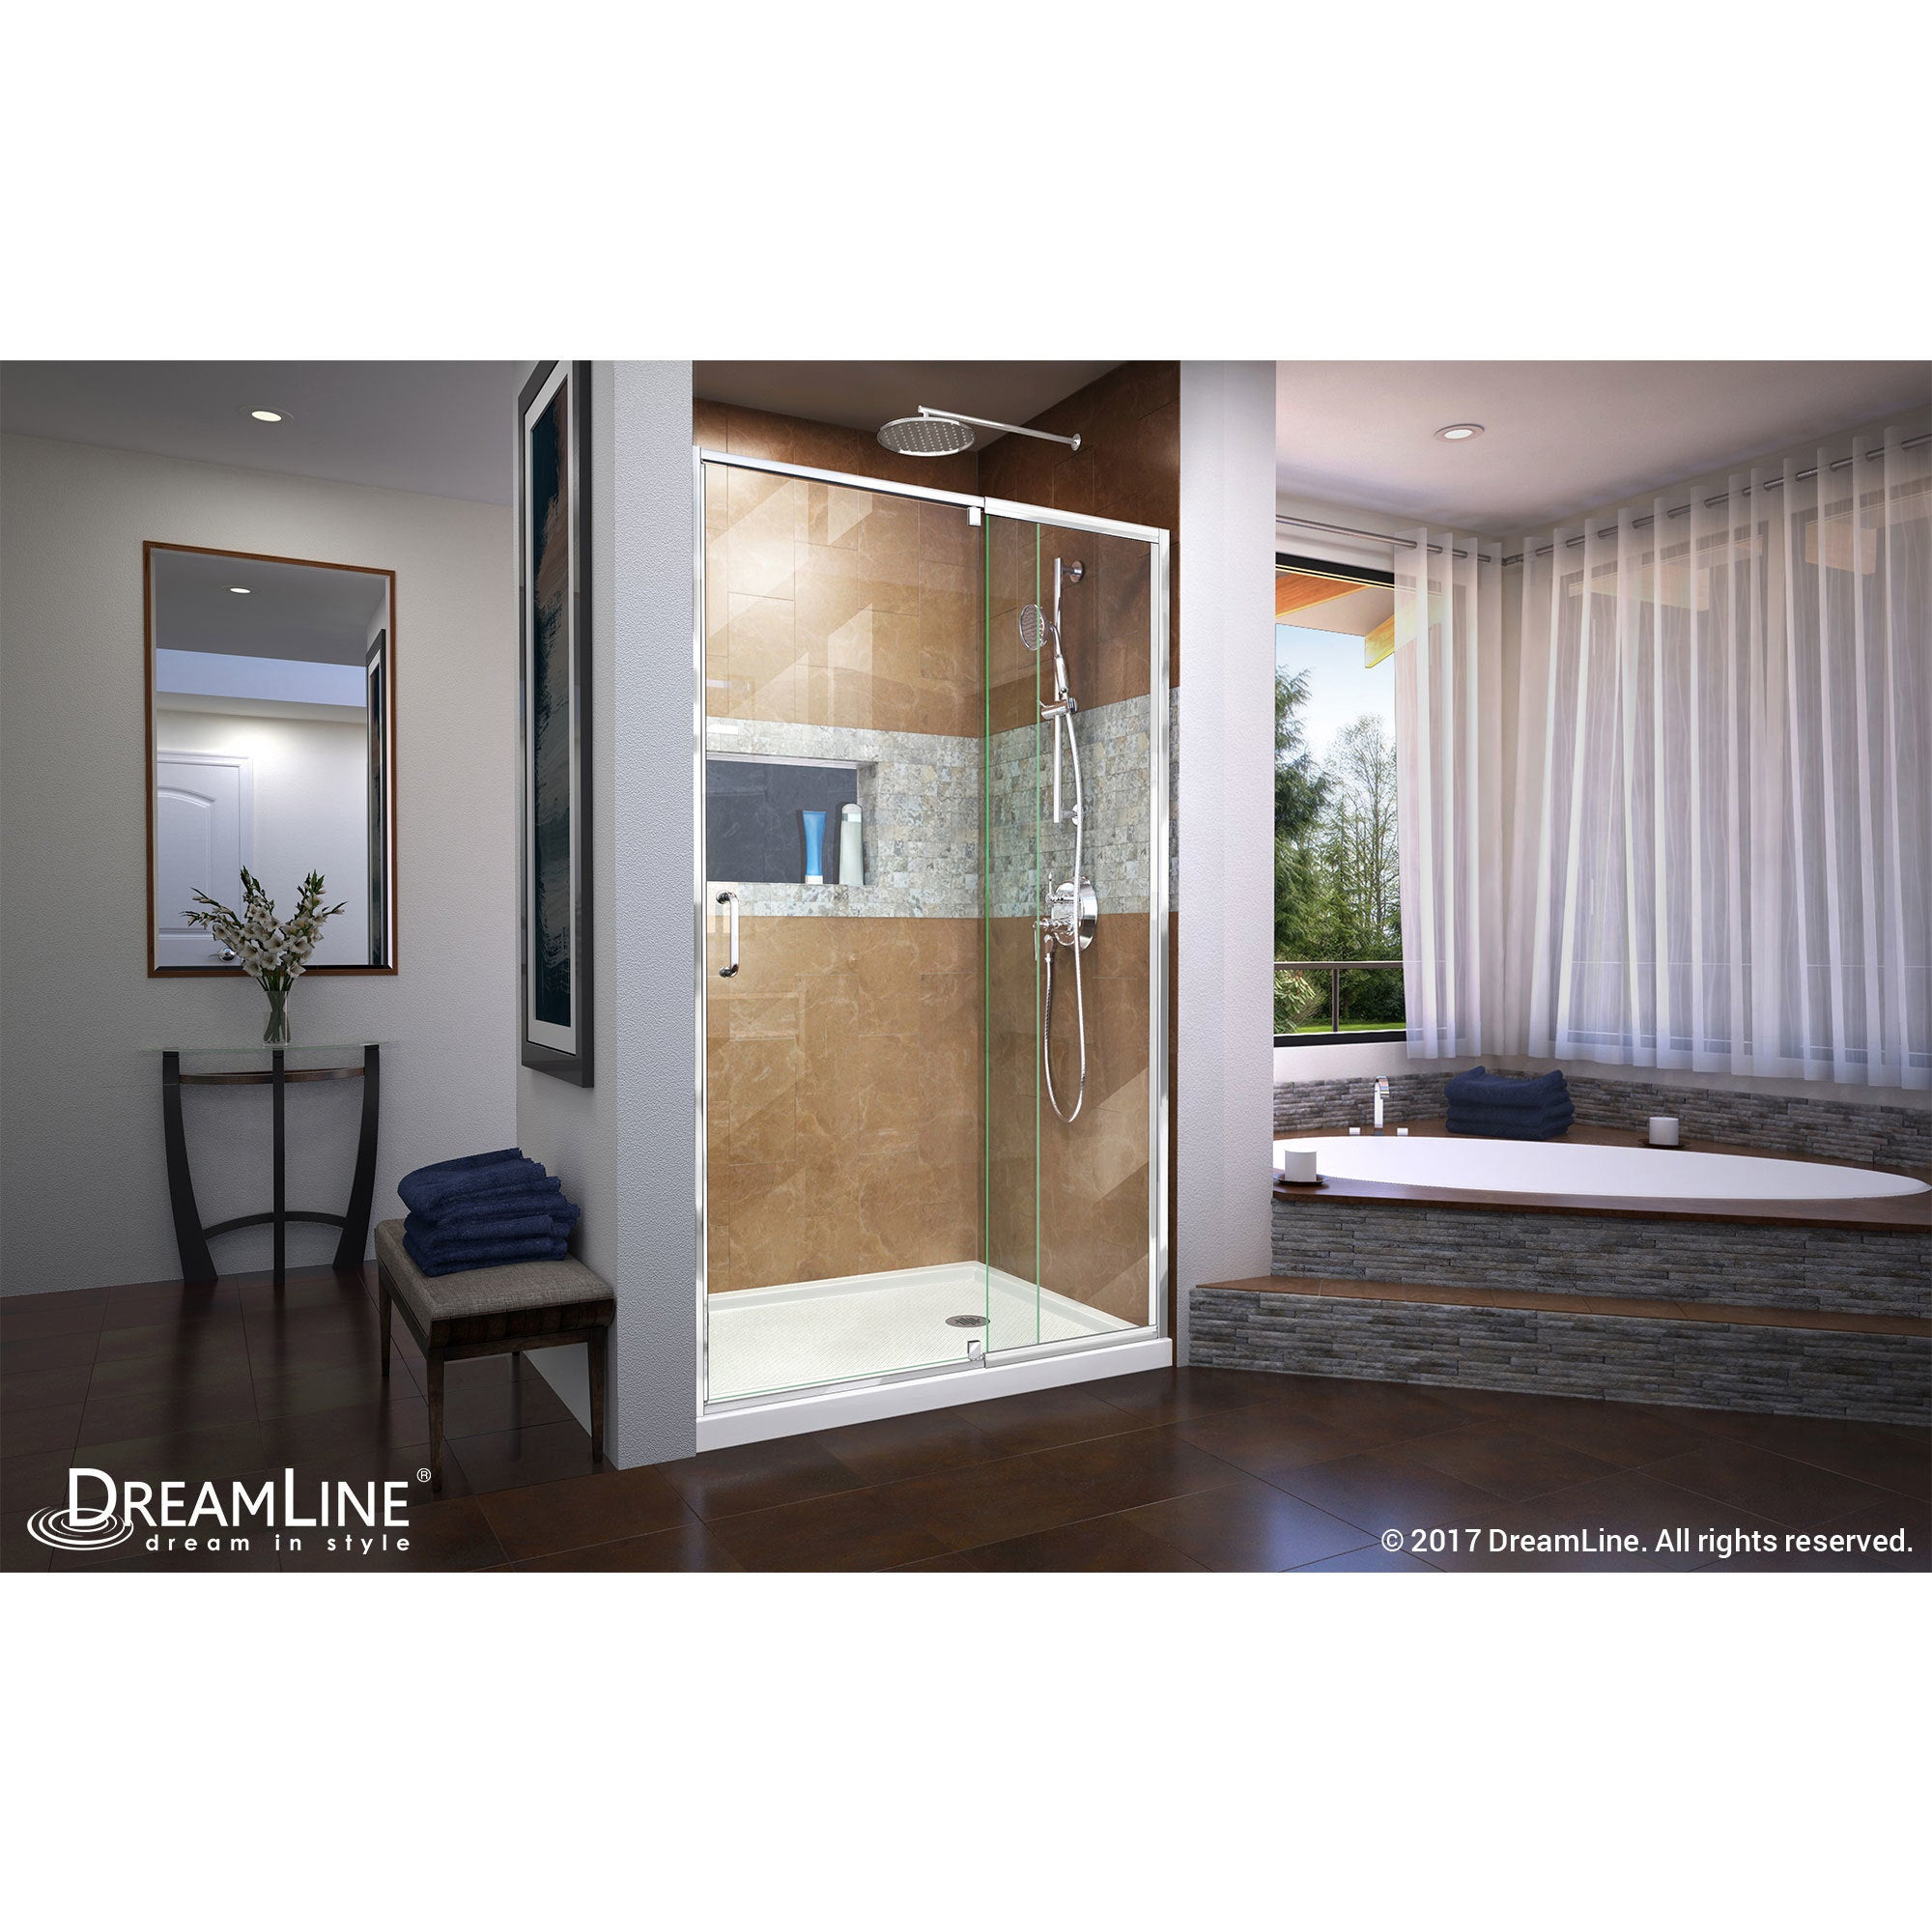 Dreamline Flex 38 42 In W X 72 In H Semi Frameless Pivot Shower Door 38 42 W